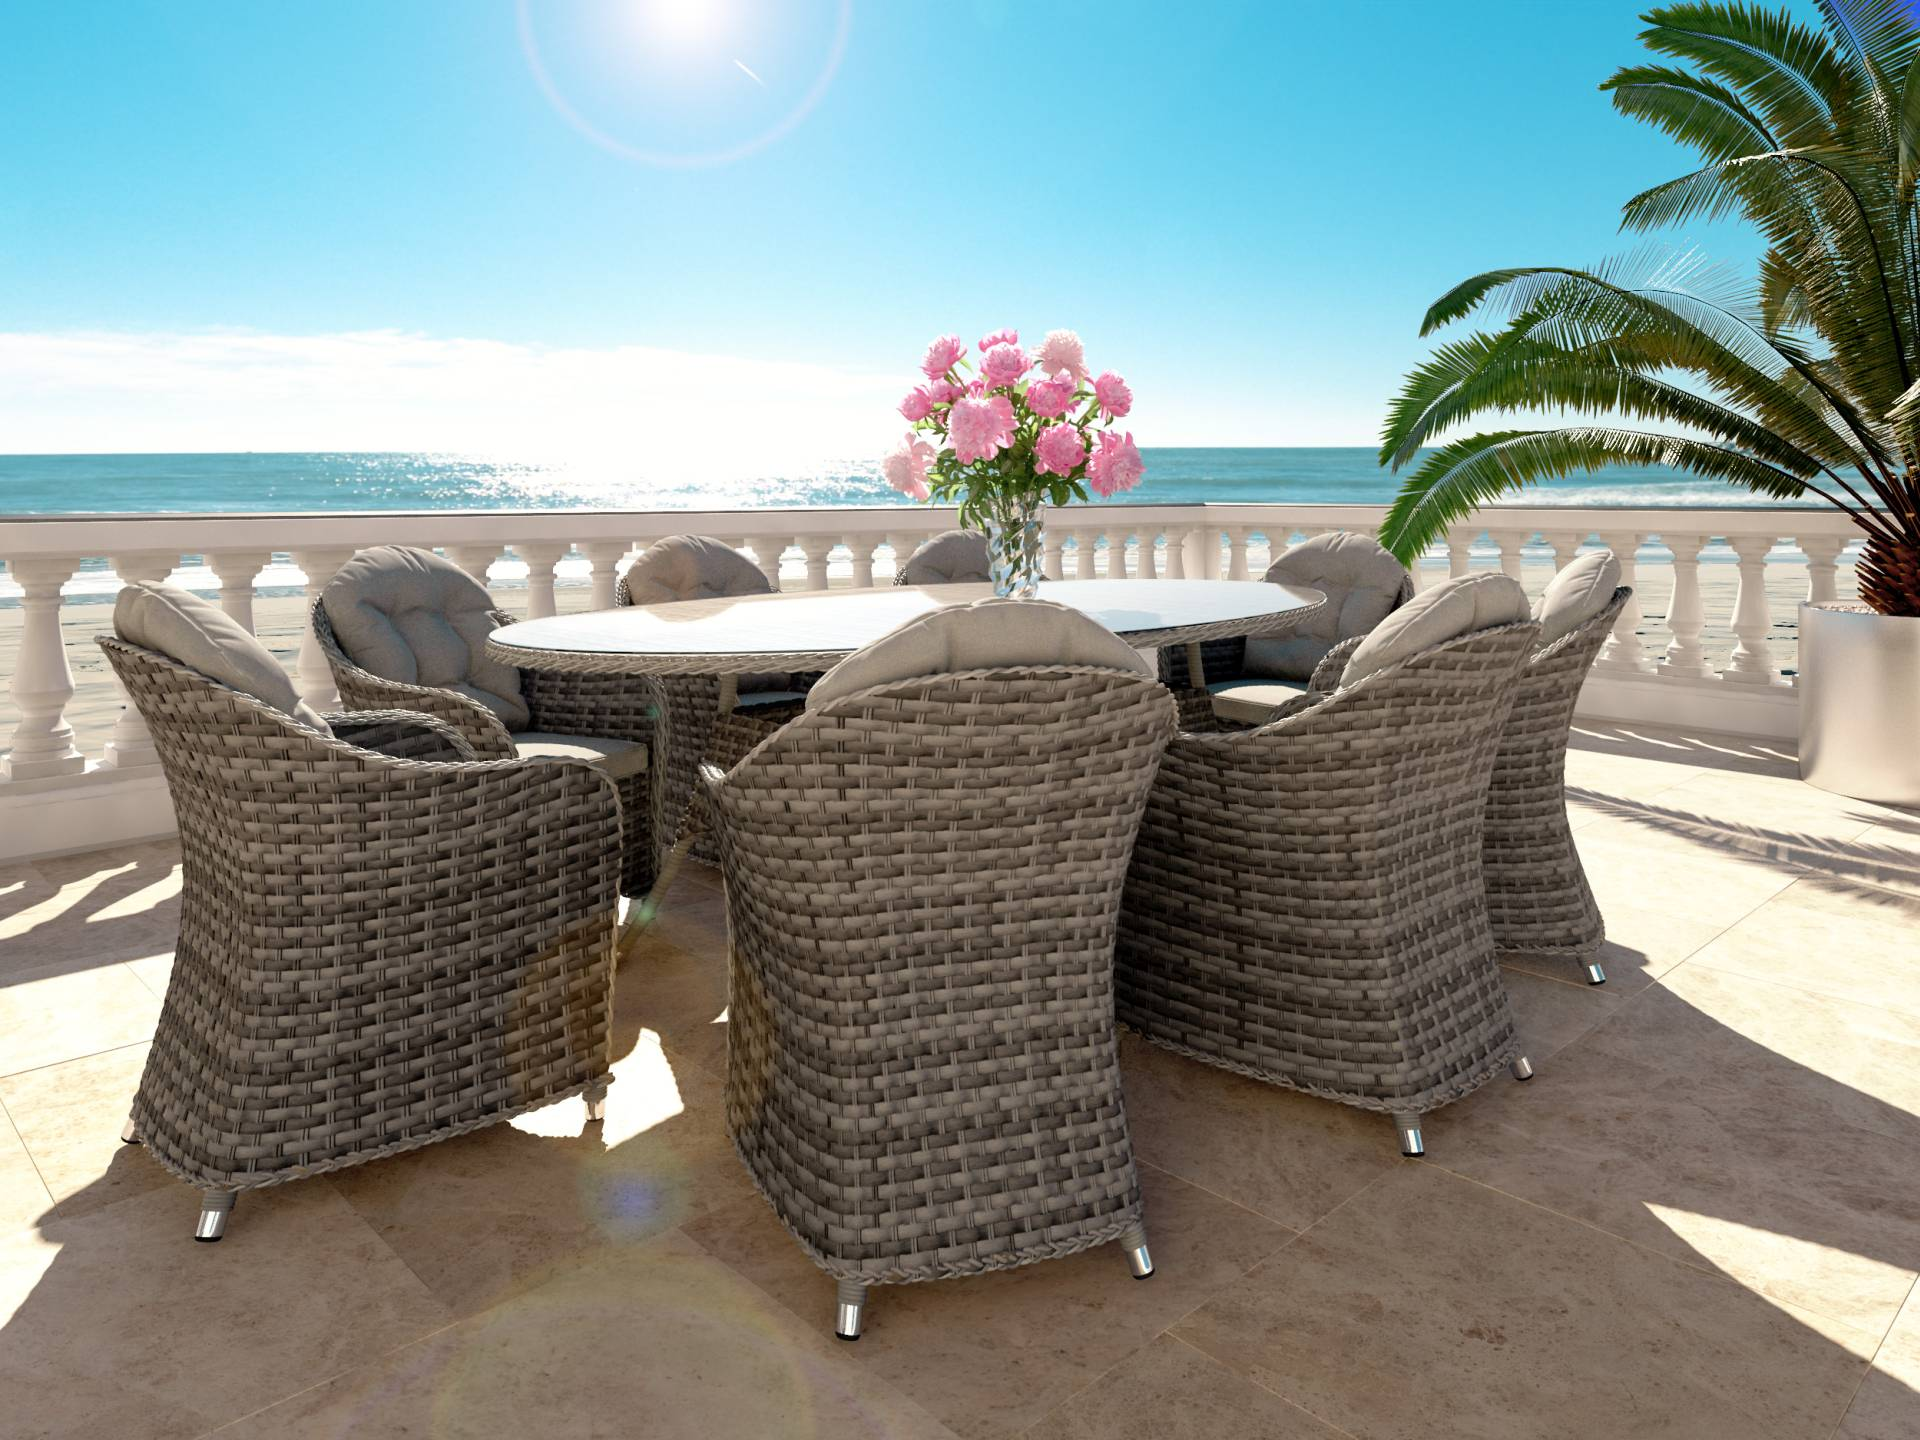 artelia rattan essgruppe ocean line livia xl f r 8 personen mit tisch und st hlen aus polyrattan. Black Bedroom Furniture Sets. Home Design Ideas